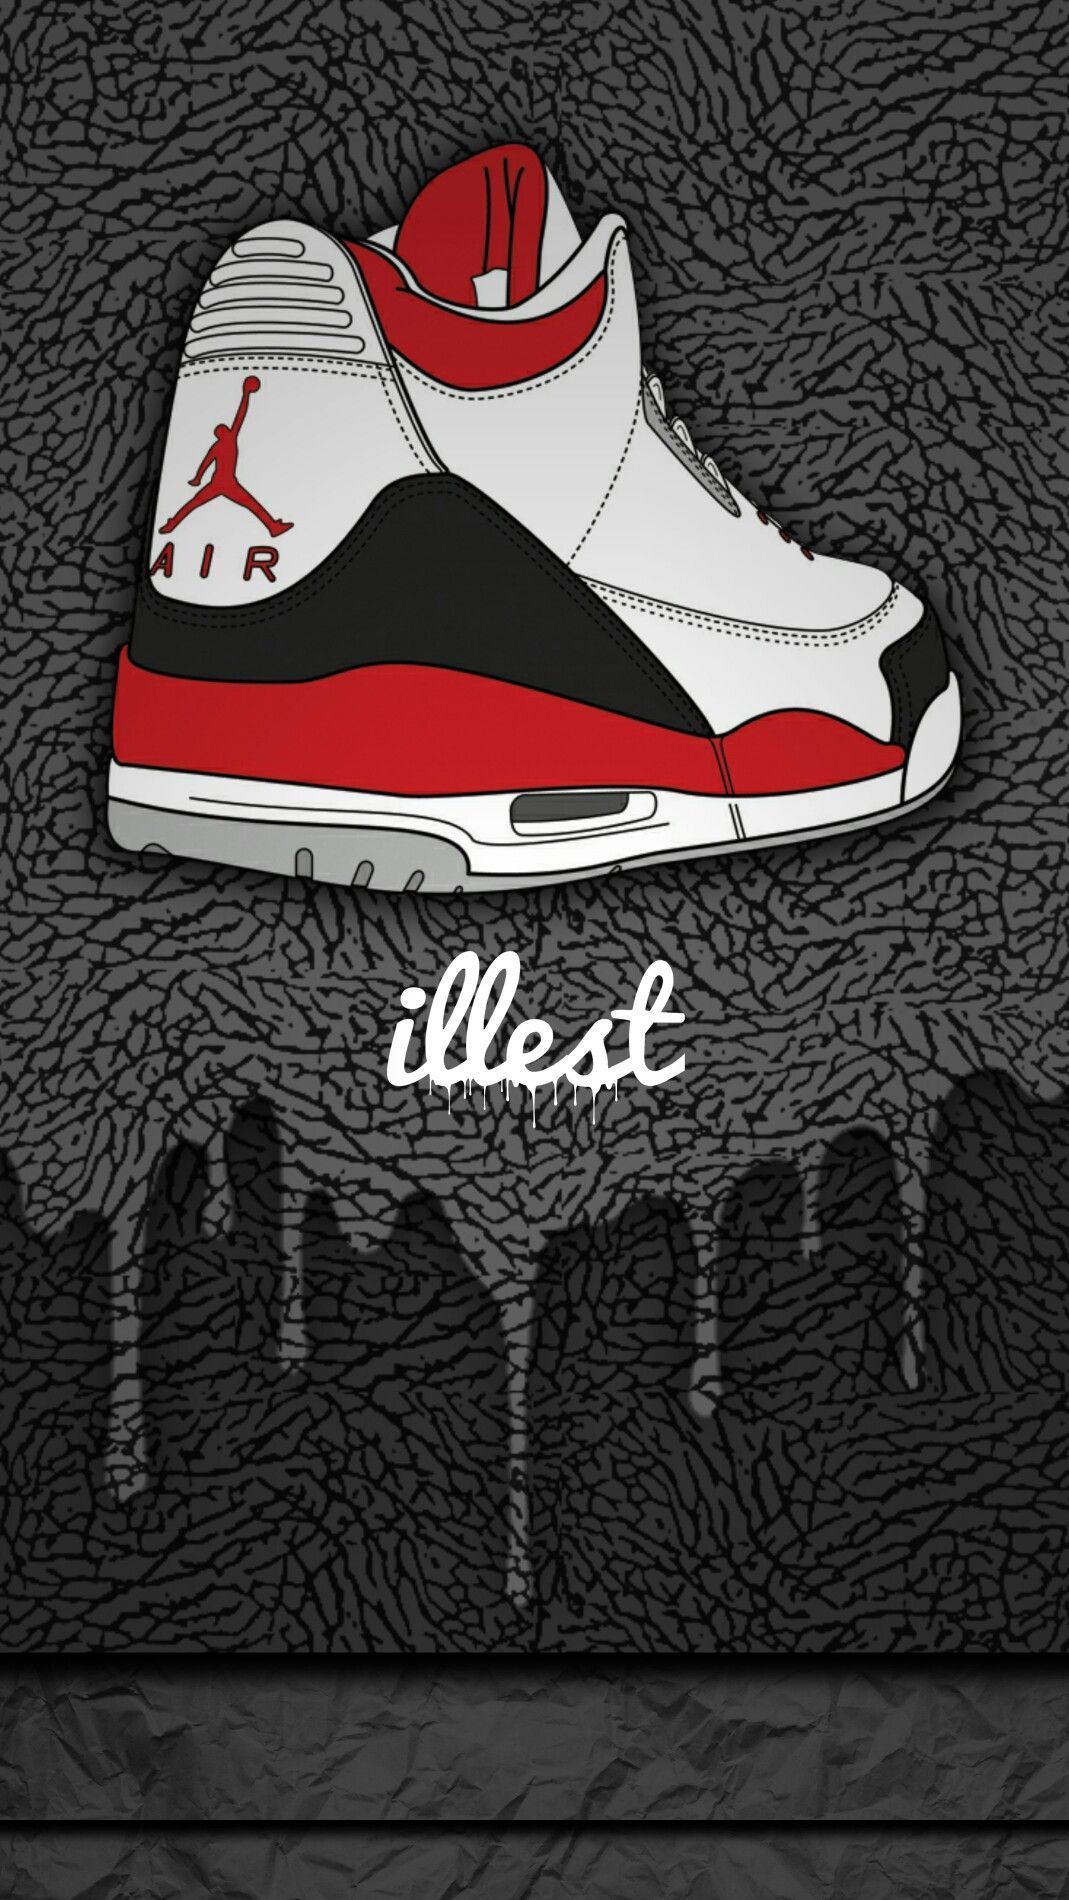 1069x1900 Pin by john aldrin on jordans | Sneaker art, Iphone wallpaper, Wallpaper